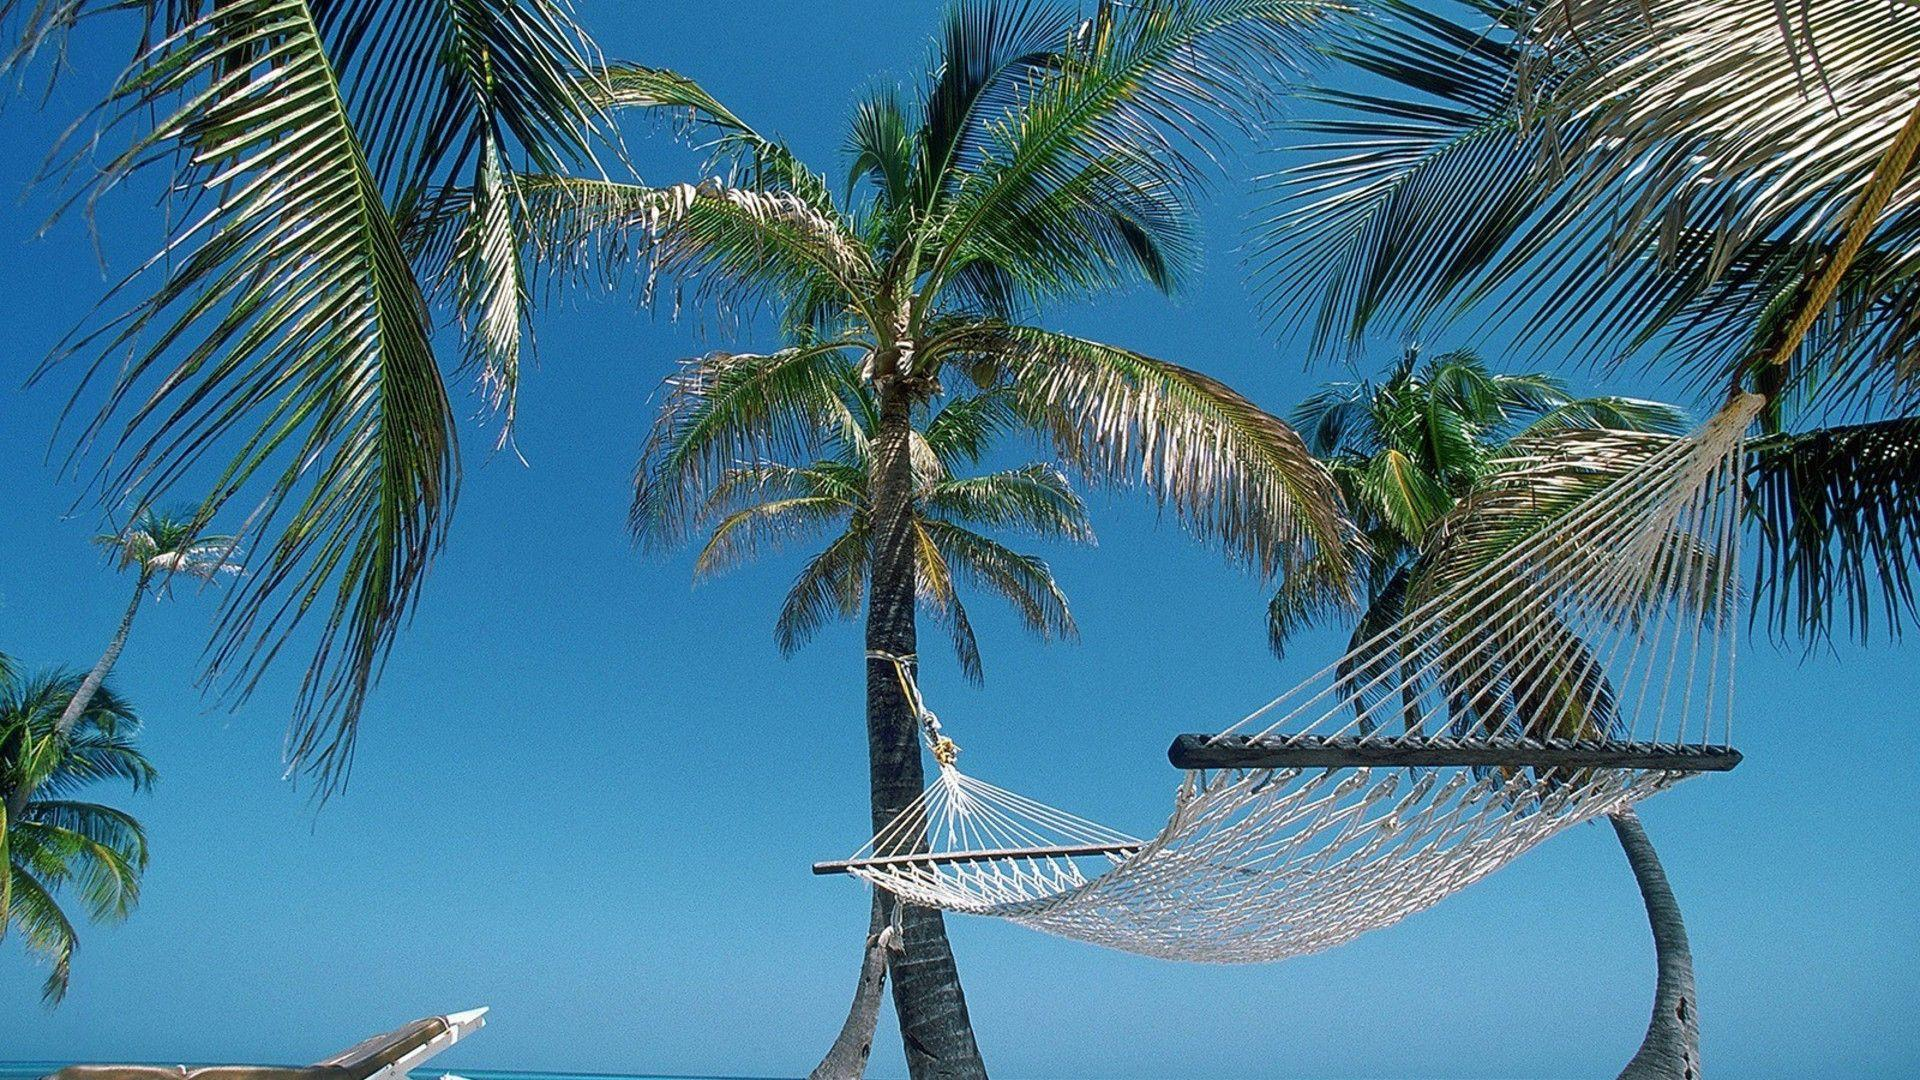 Nature beach hammock palm trees belize wallpapers